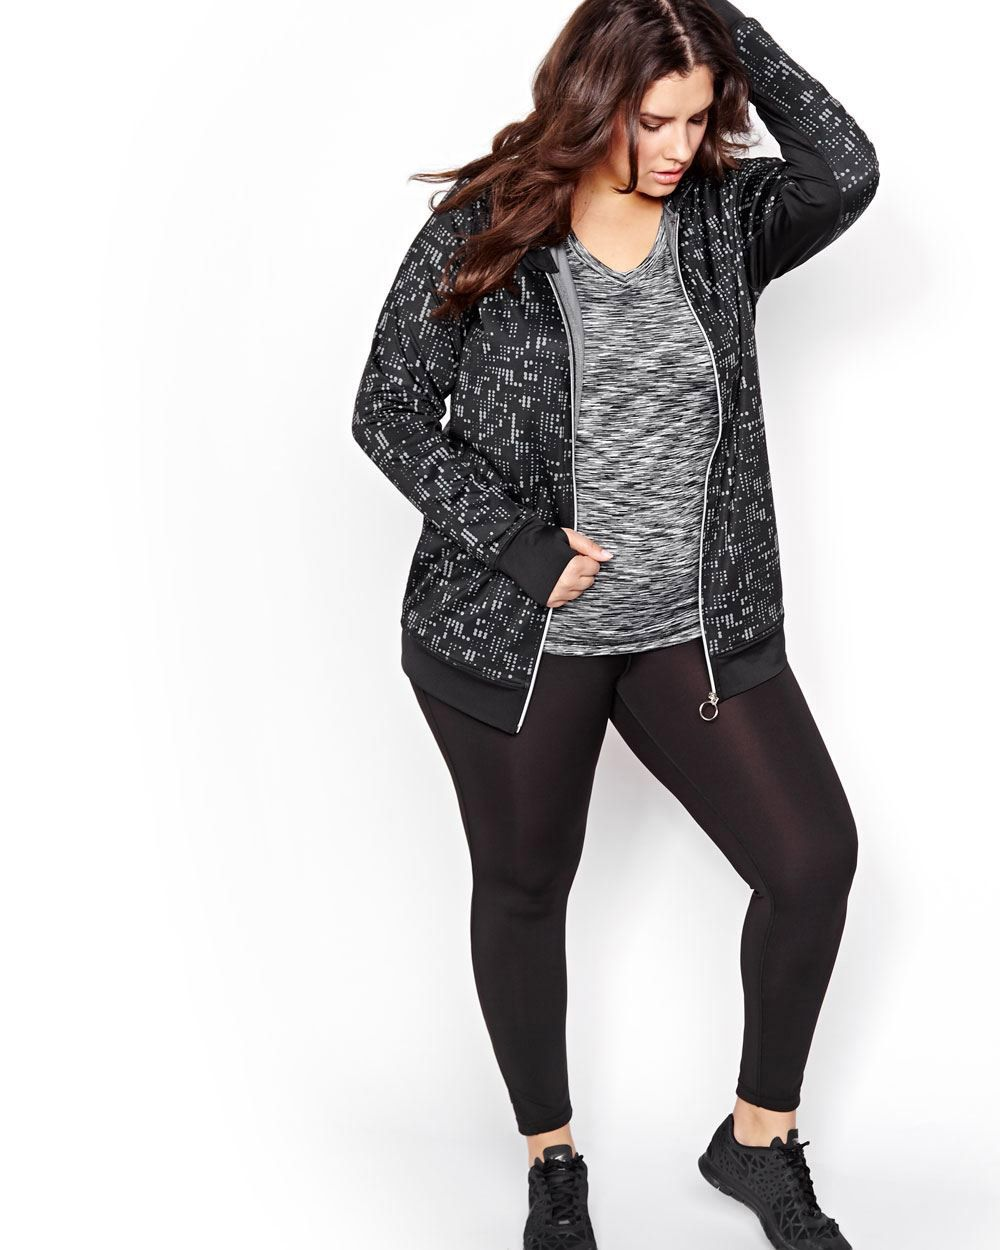 10 best plus-size activewear lines for sweating it out in style